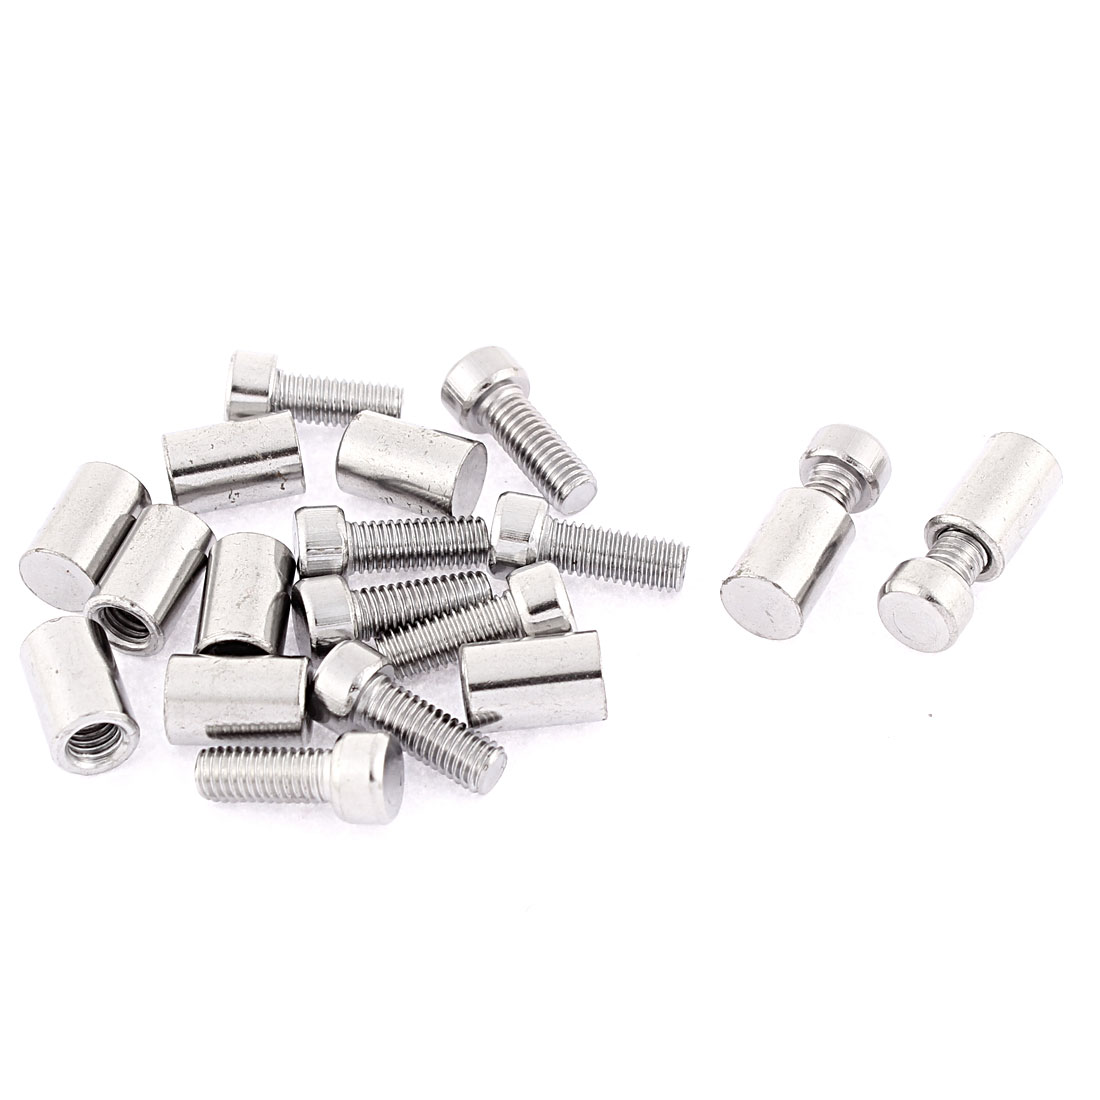 8mm x 20mm Stainless Steel Standoff Hardware 10pcs for Glass